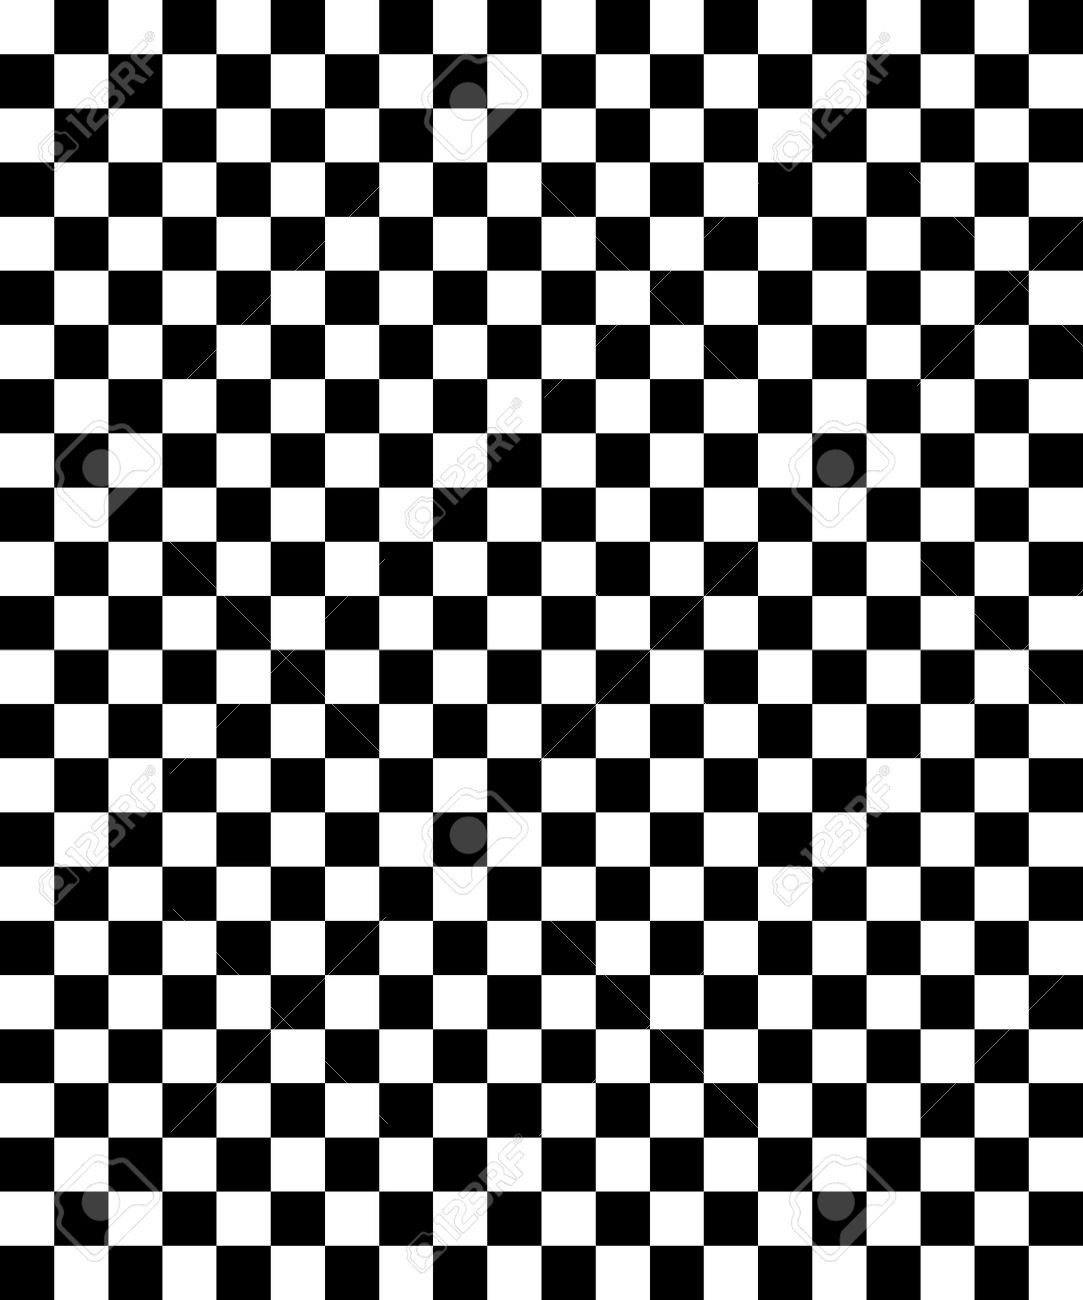 Checkered Design Checkerboard Pattern Stock Photo Picture And Royalty Free Image